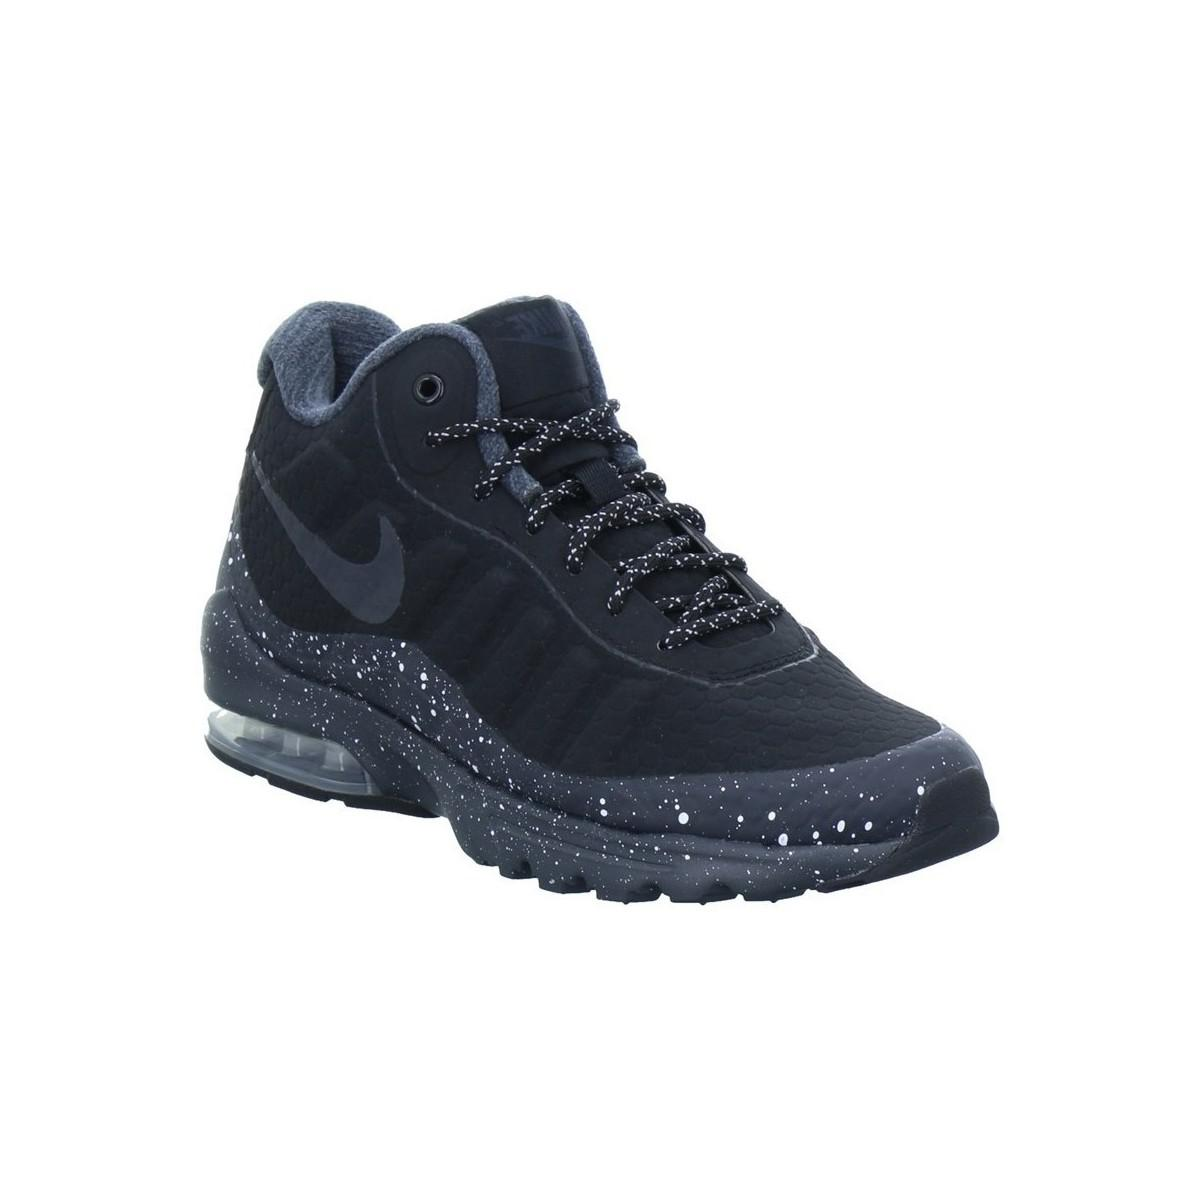 nike air max invigor men 39 s shoes high top trainers in. Black Bedroom Furniture Sets. Home Design Ideas